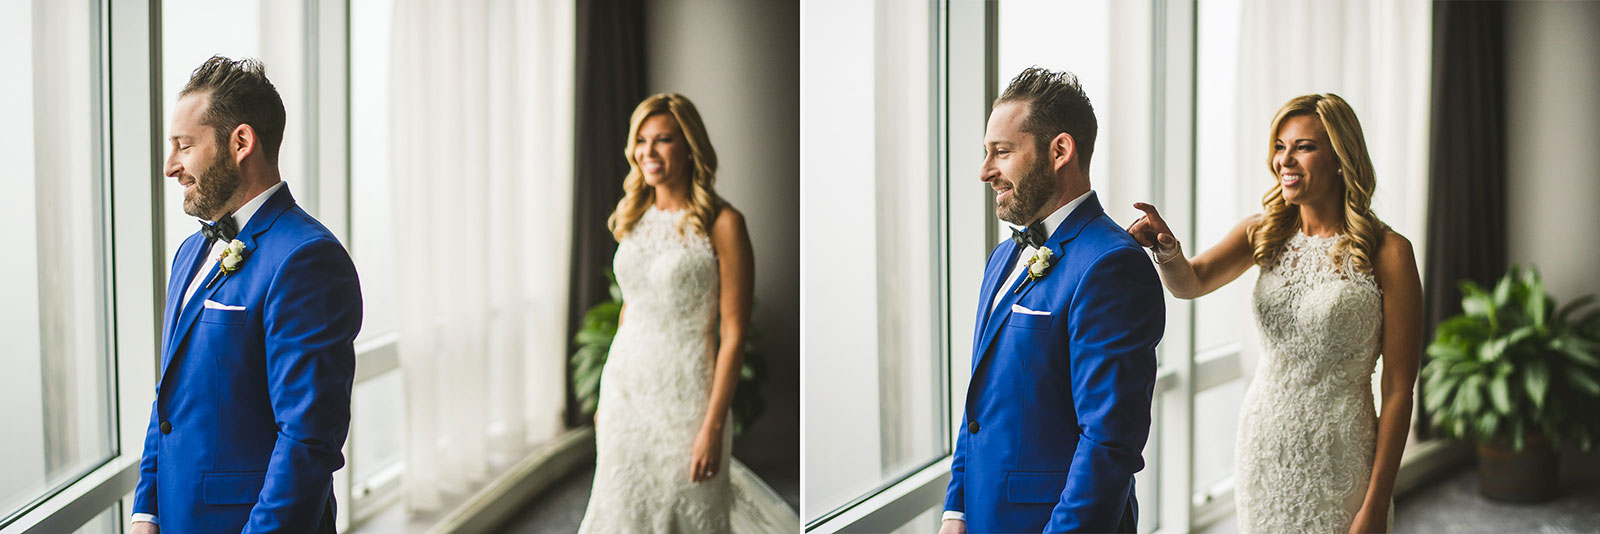 15 first look inspriation photos - Chicago Wedding Photography at Gallery 1028 // Courtnie + David